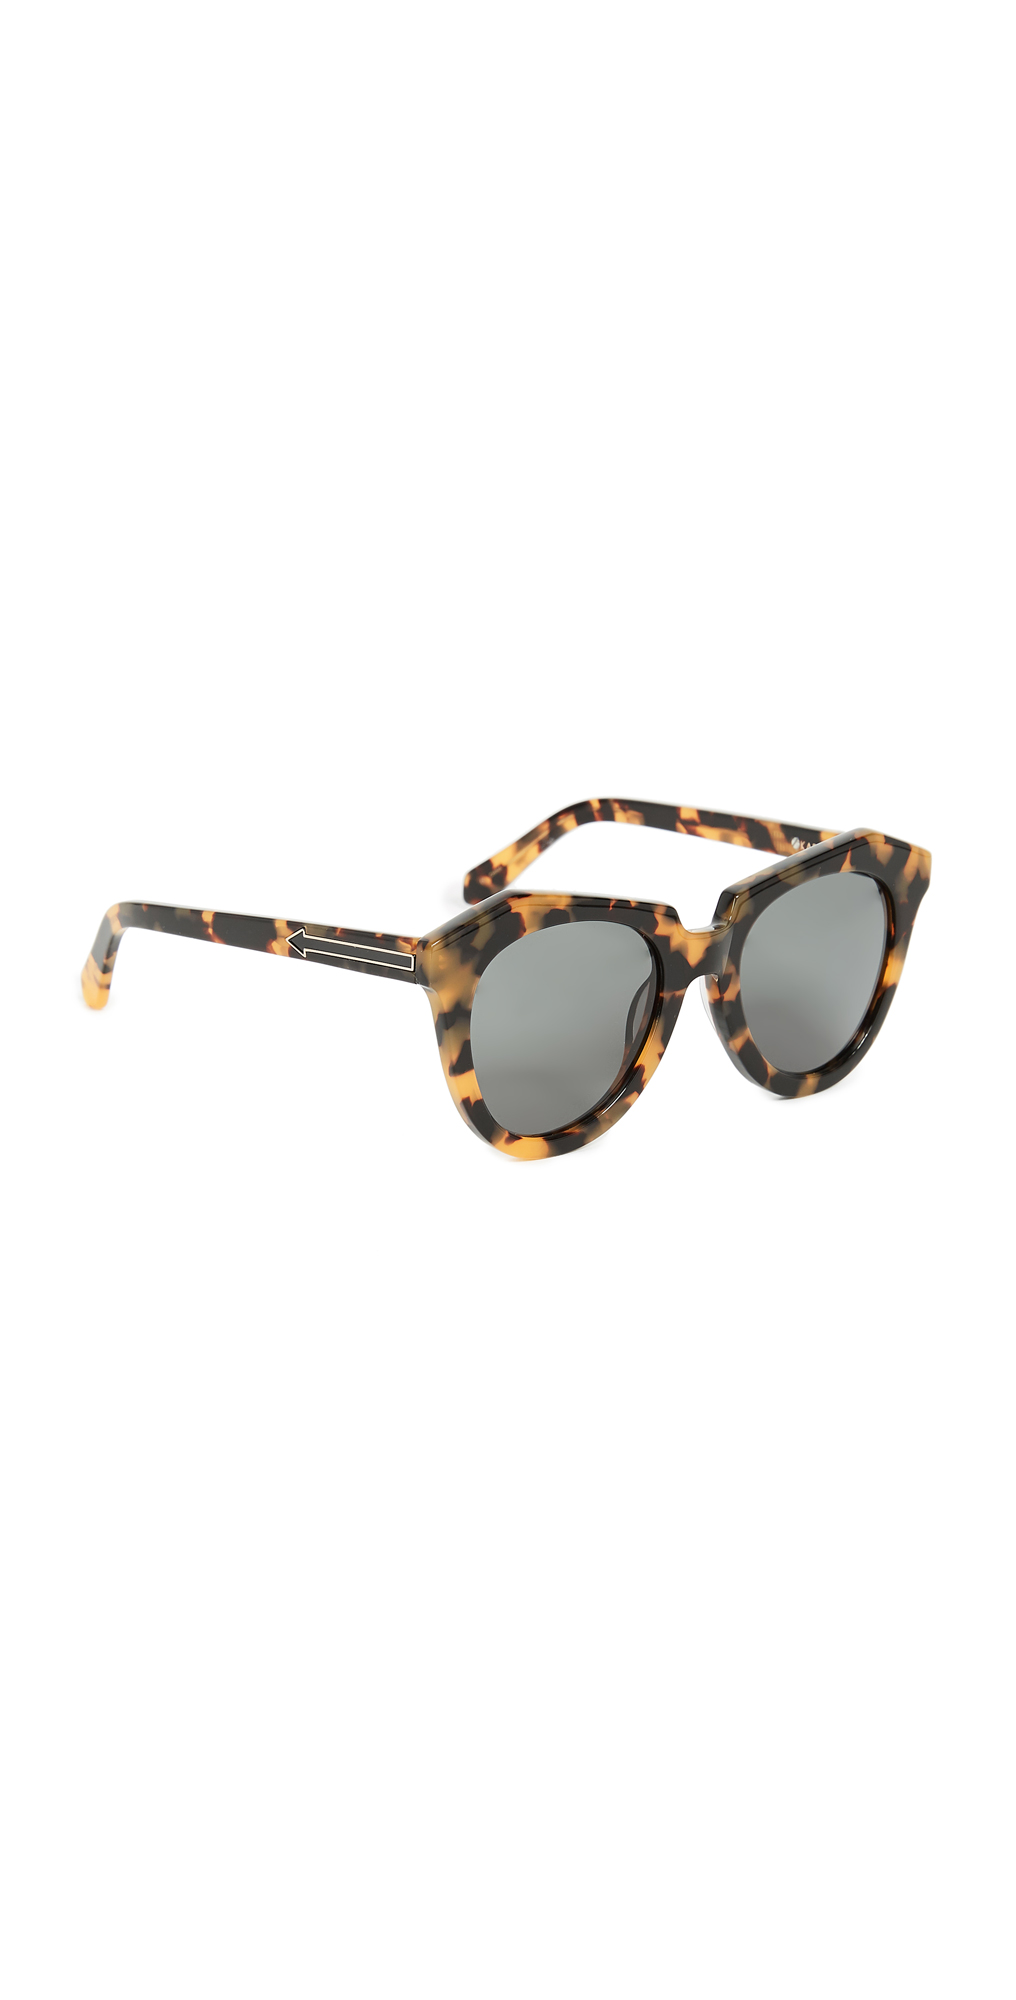 The Number One Sunglasses